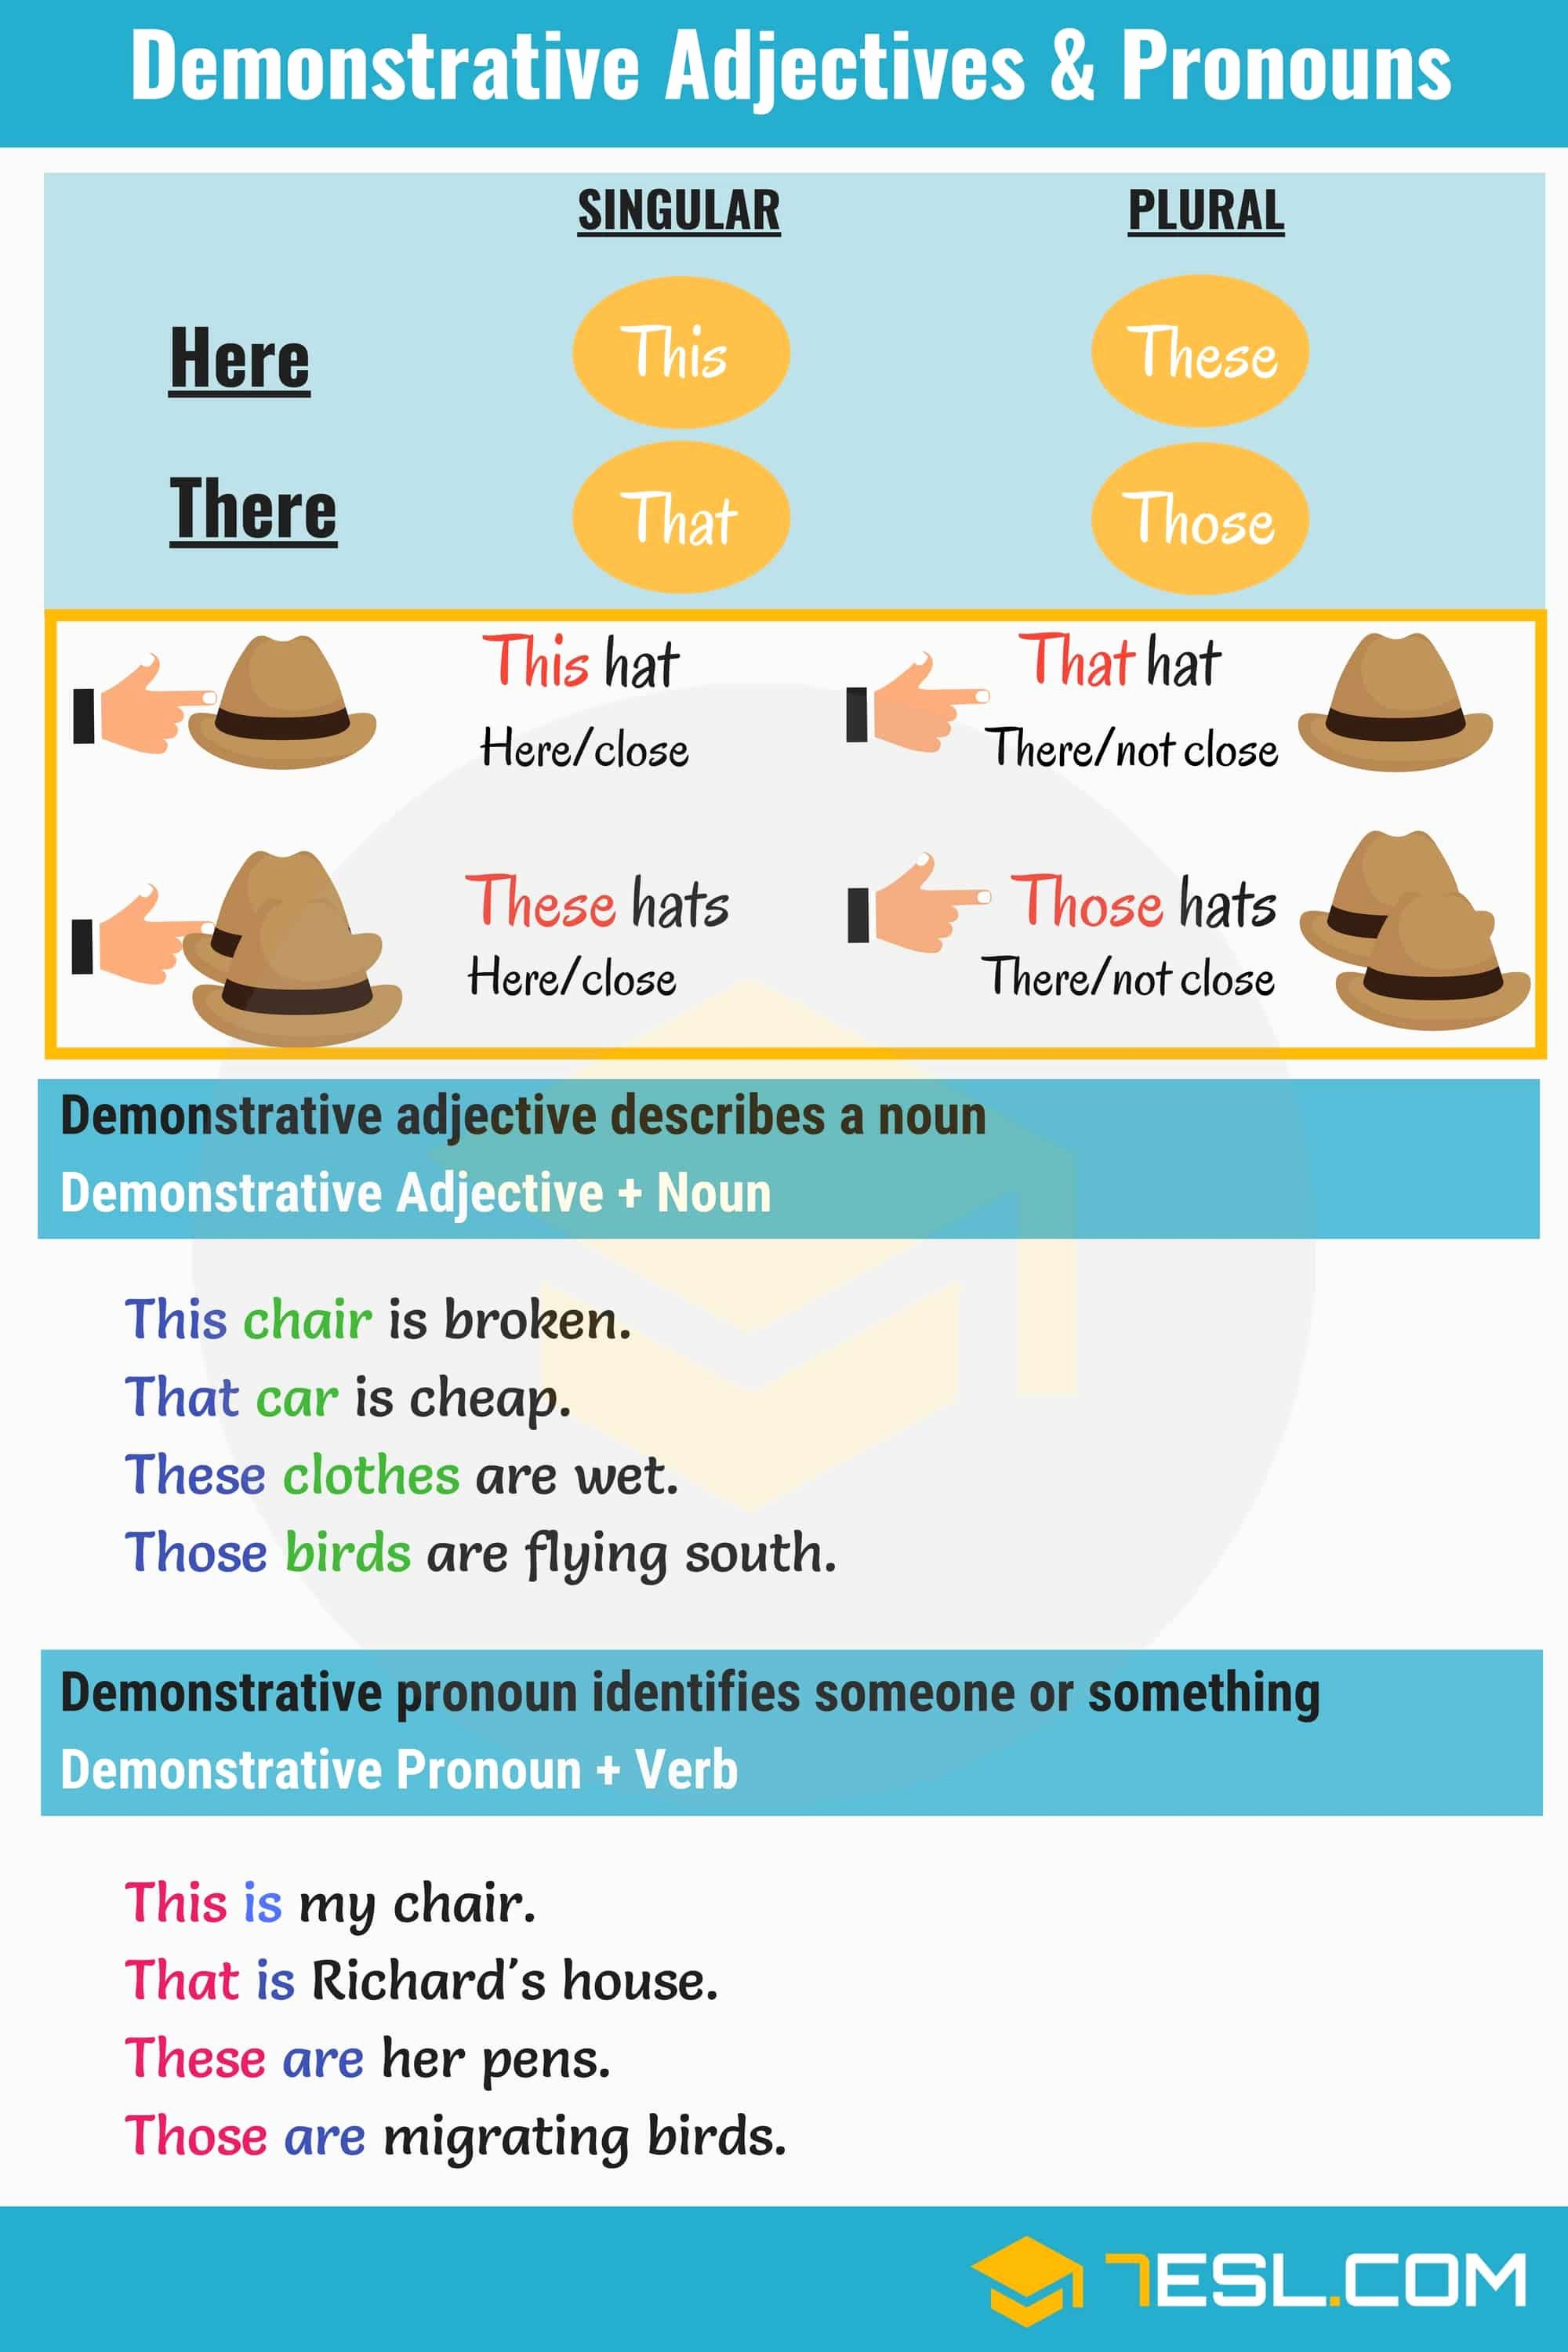 Demonstrative Adjectives Spanish Worksheet New Demonstrative Adjectives & Pronouns This that these Those